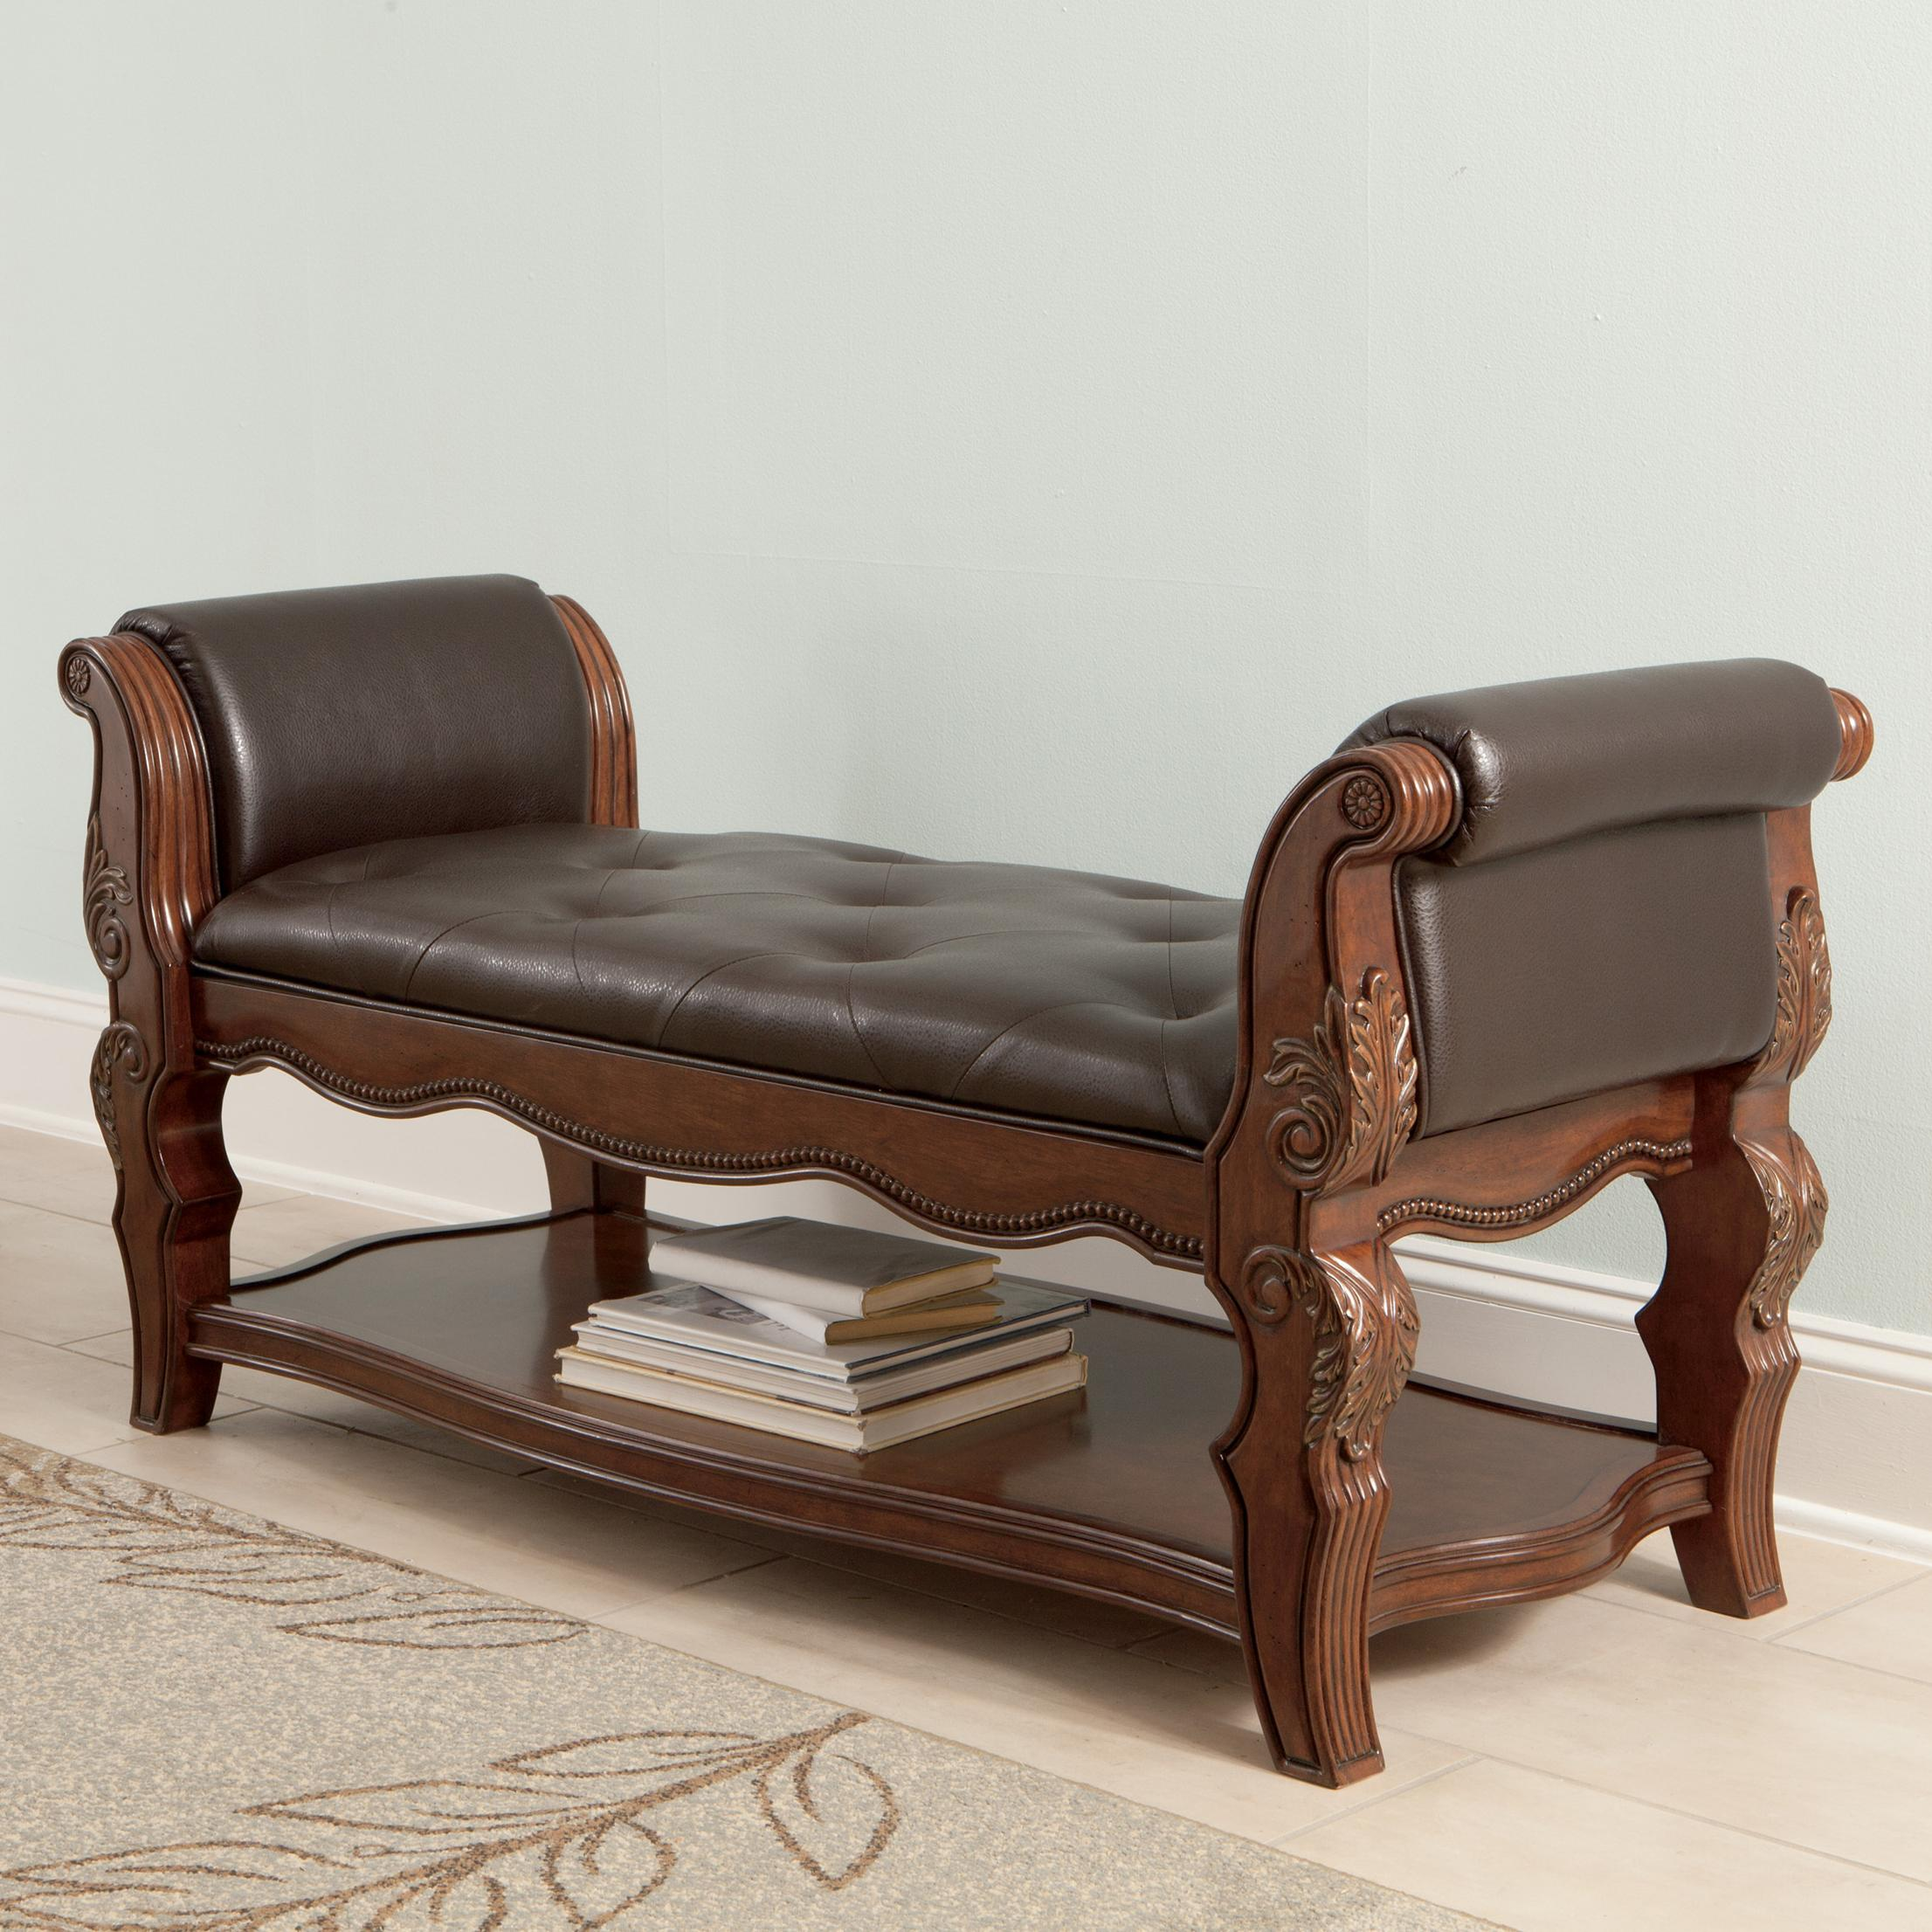 Millennium Ledelle Upholstered Bench - Item Number: B705-09